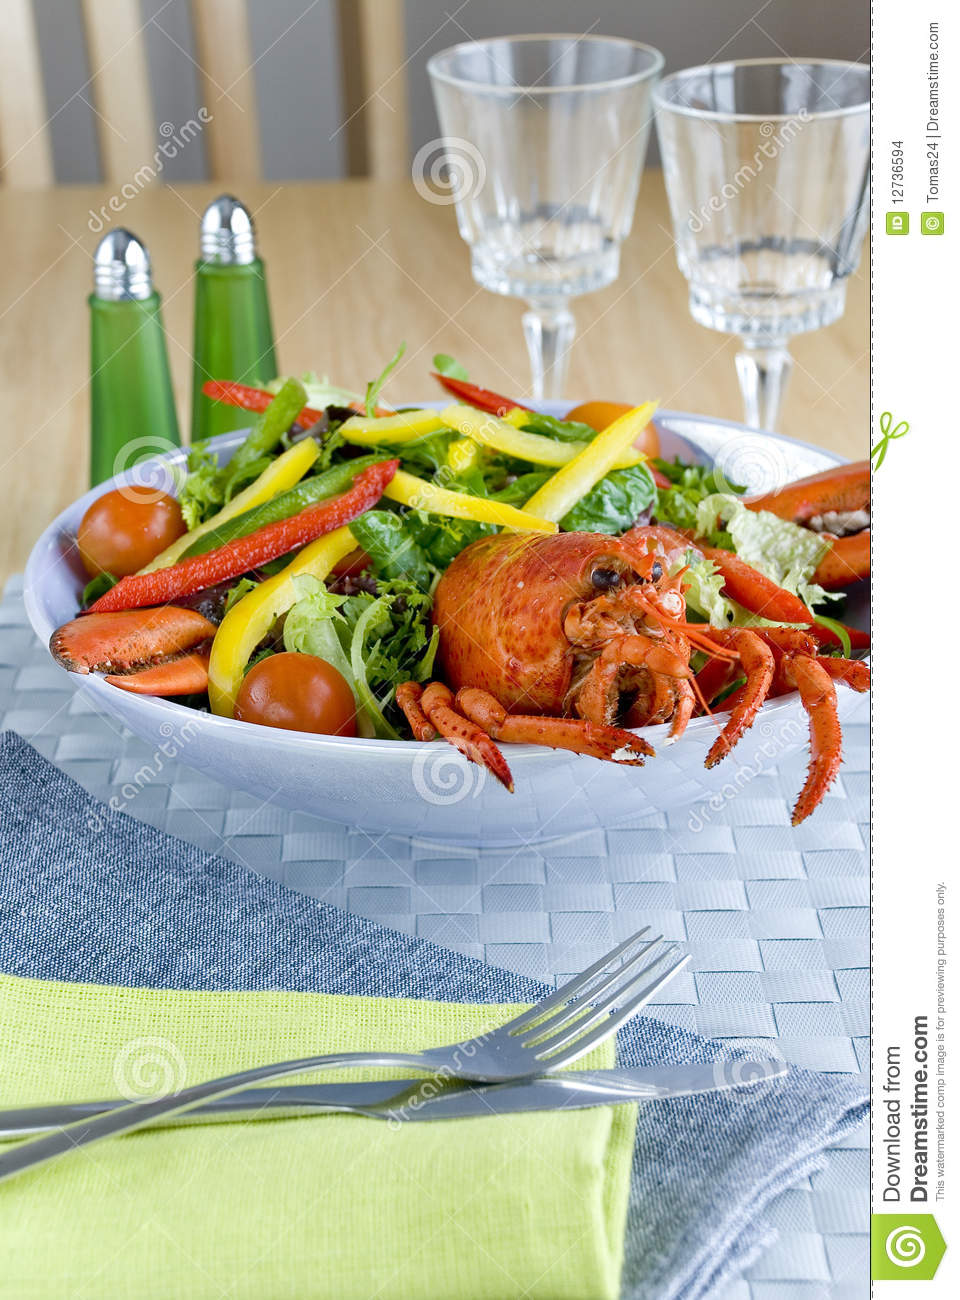 Delicious lobster salad with vegetables and poached lobster meat.